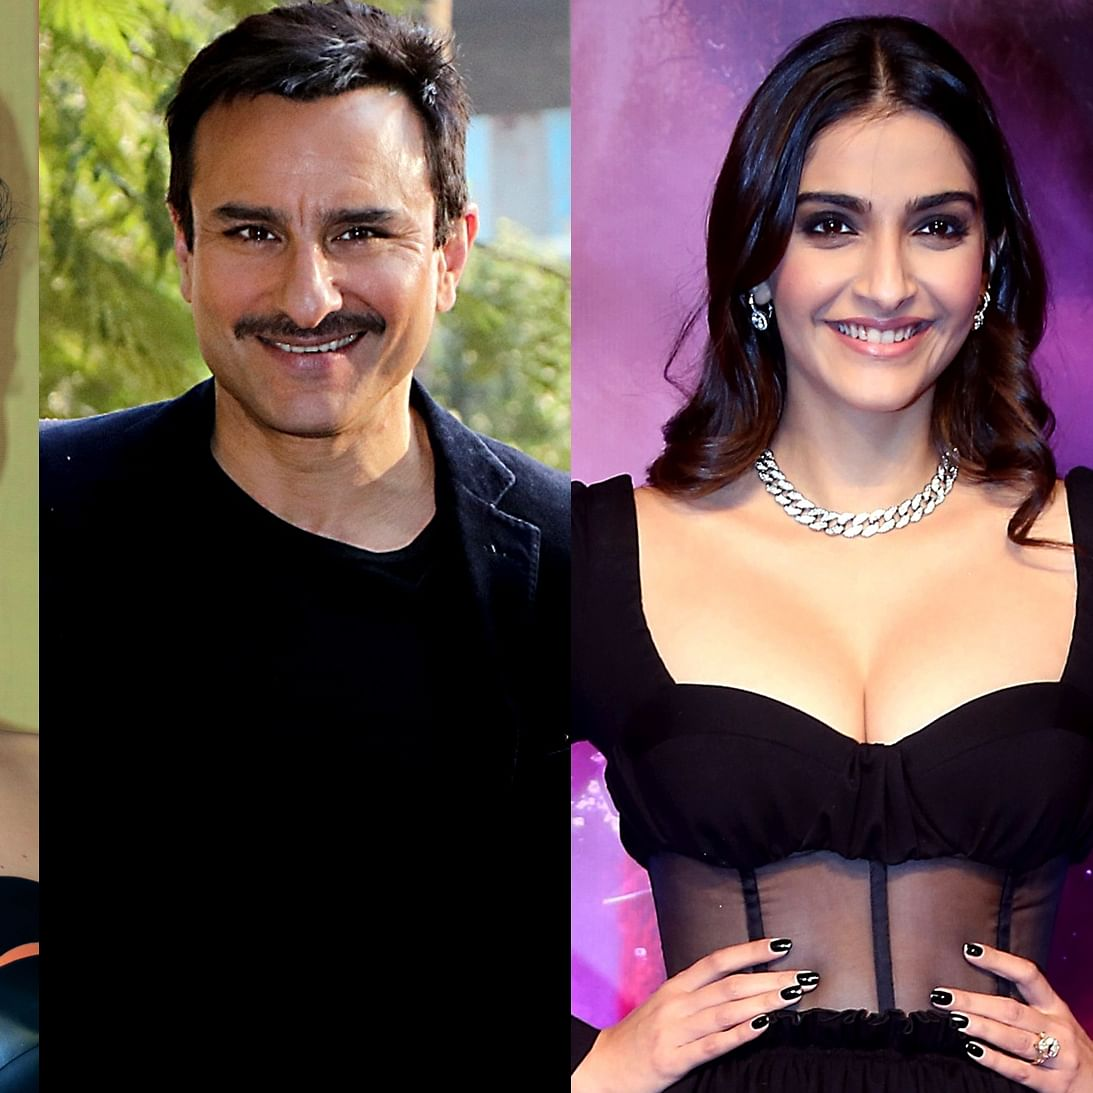 From Sonam Kapoor to Saif Ali Khan: 8 celebs who made most insensitive/tone-deaf comments in 2020